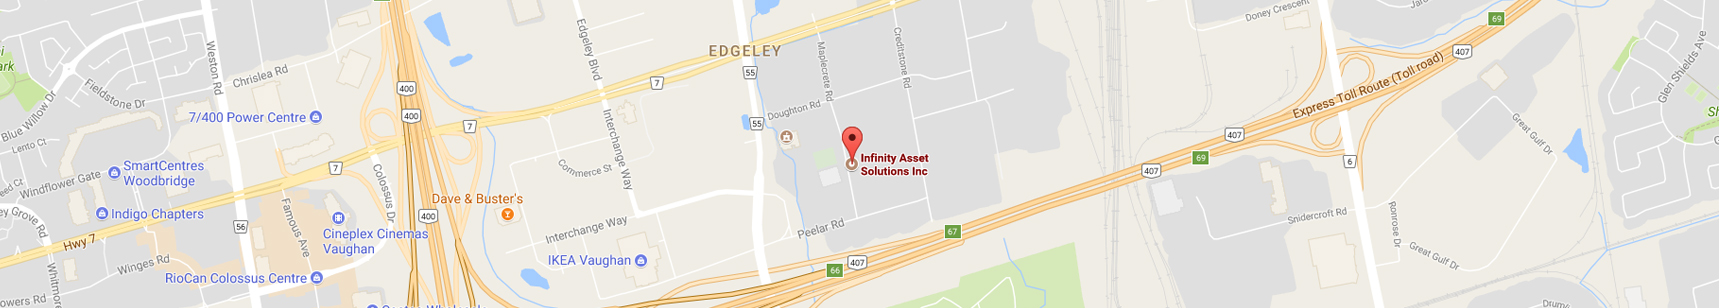 Infinity Asset Solutions Inc. Location